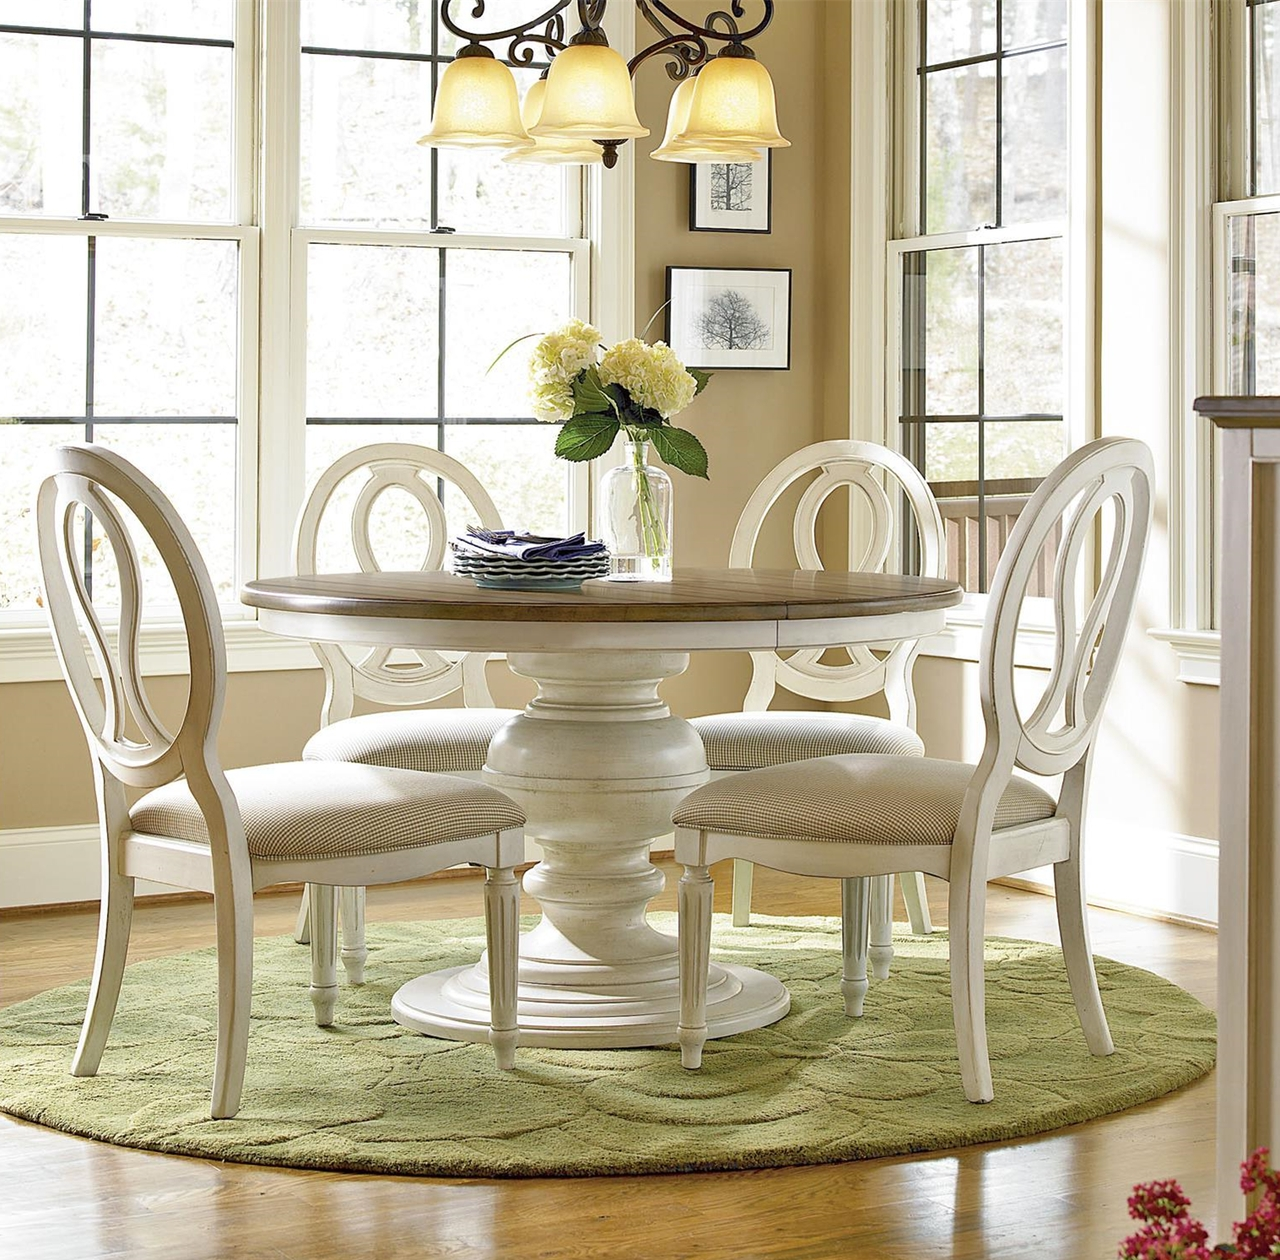 Favorite Extendable Round Dining Tables Sets Within Country Chic 5 Piece Round White Dining Table Set In  (View 13 of 25)